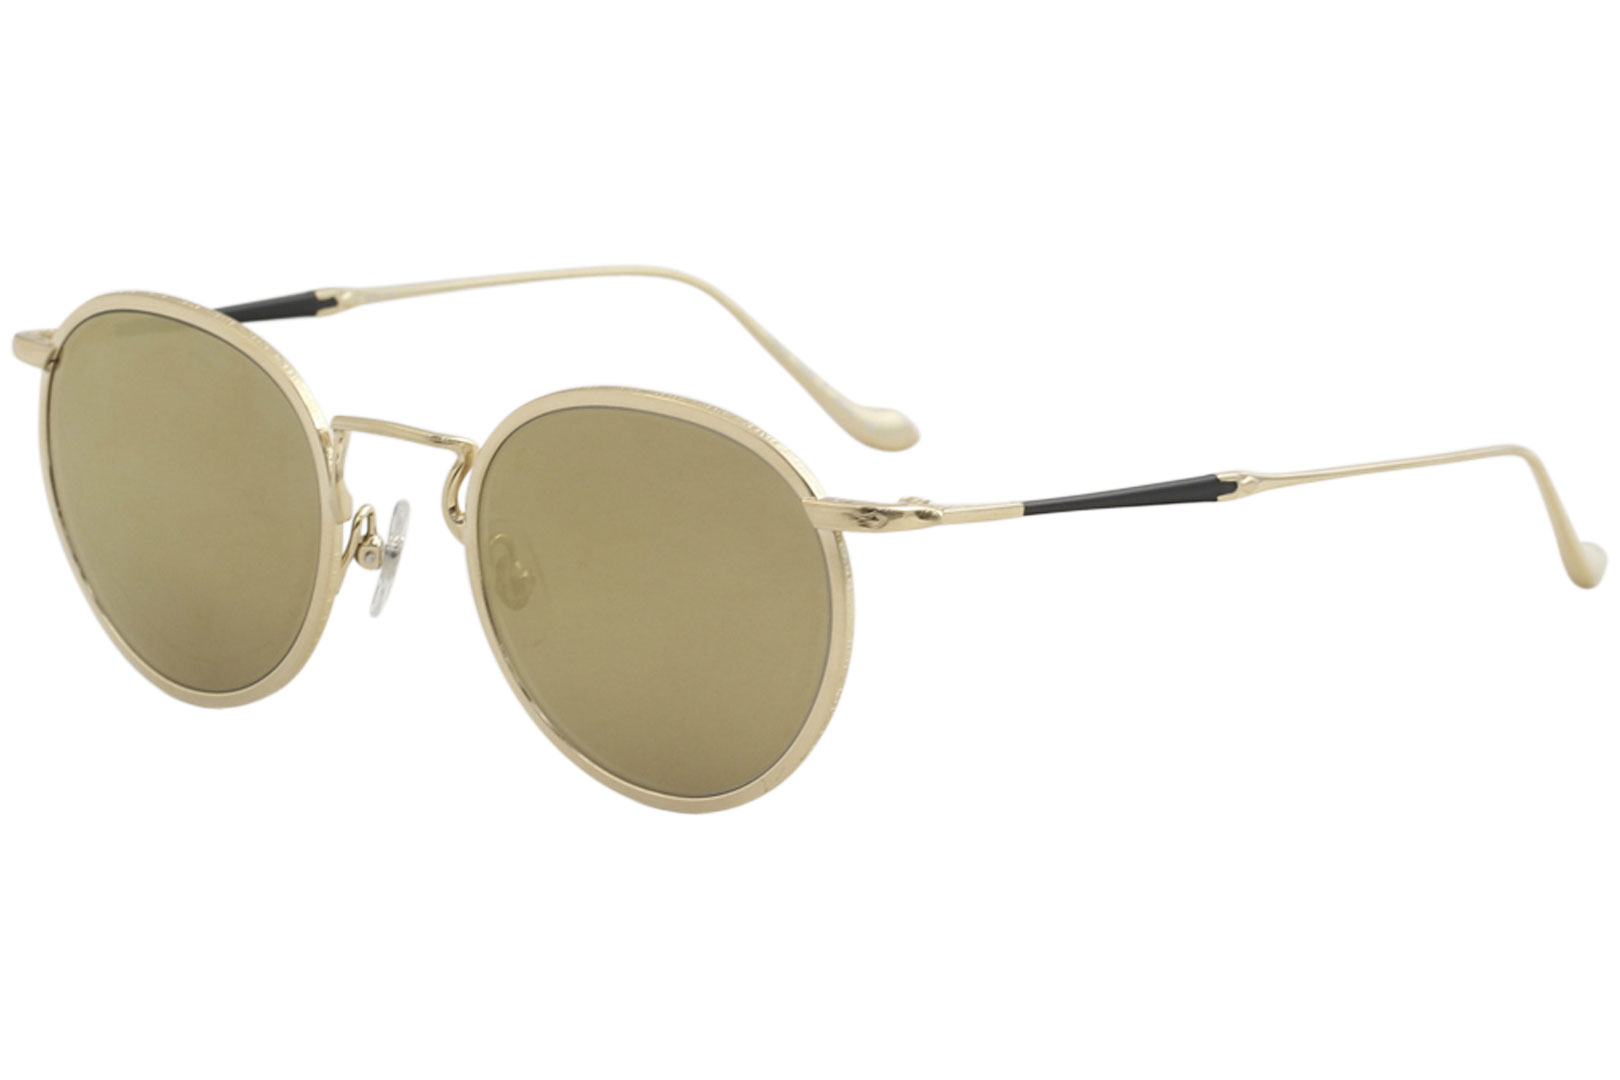 54d6cffe8 Matsuda Men's M3058 M/3058 BG Brushed Gold Fashion Round Sunglasses ...